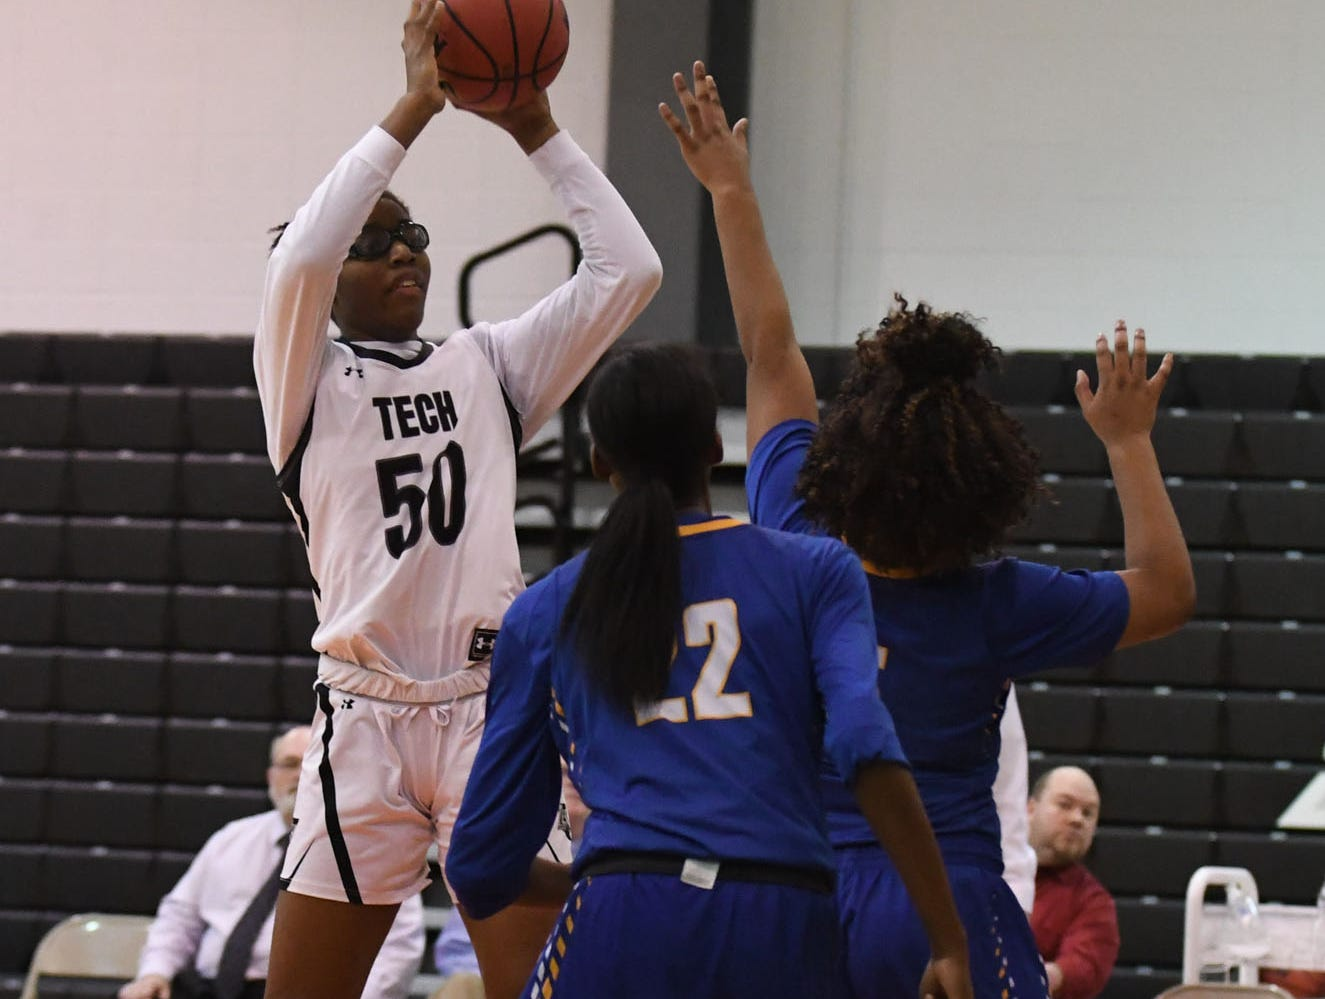 Sussex Tech's Janiya Stevens with the jumper against Sussex Central on Thursday, Jan. 31, 2019.